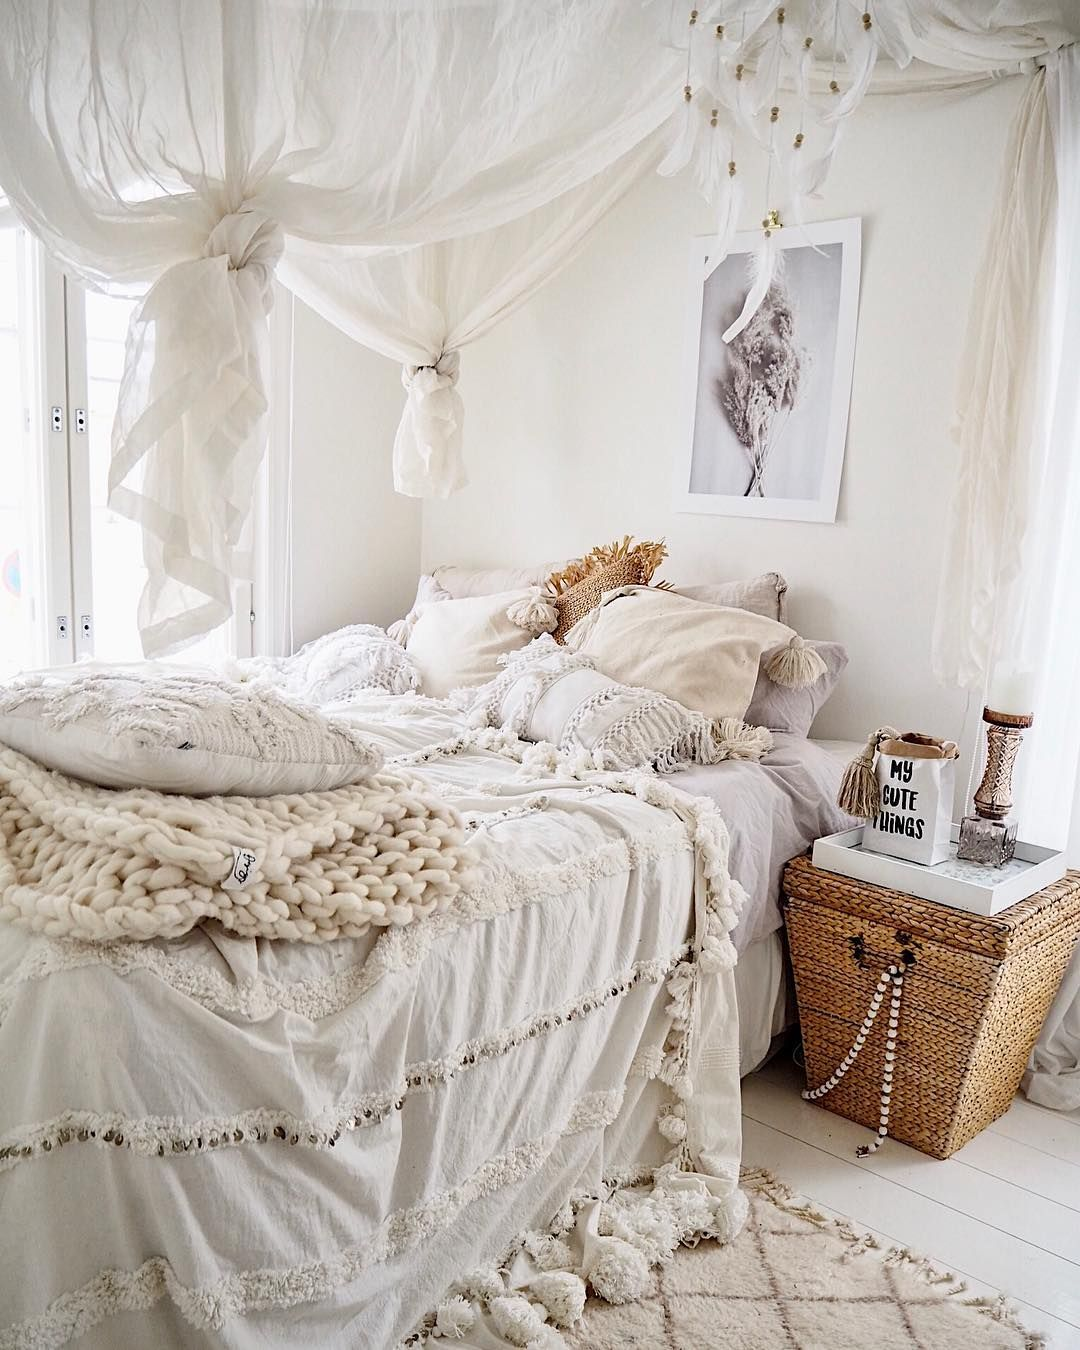 Bohemian bedroom with ivory sheets and white canopy drapes via @prinsessavanessa